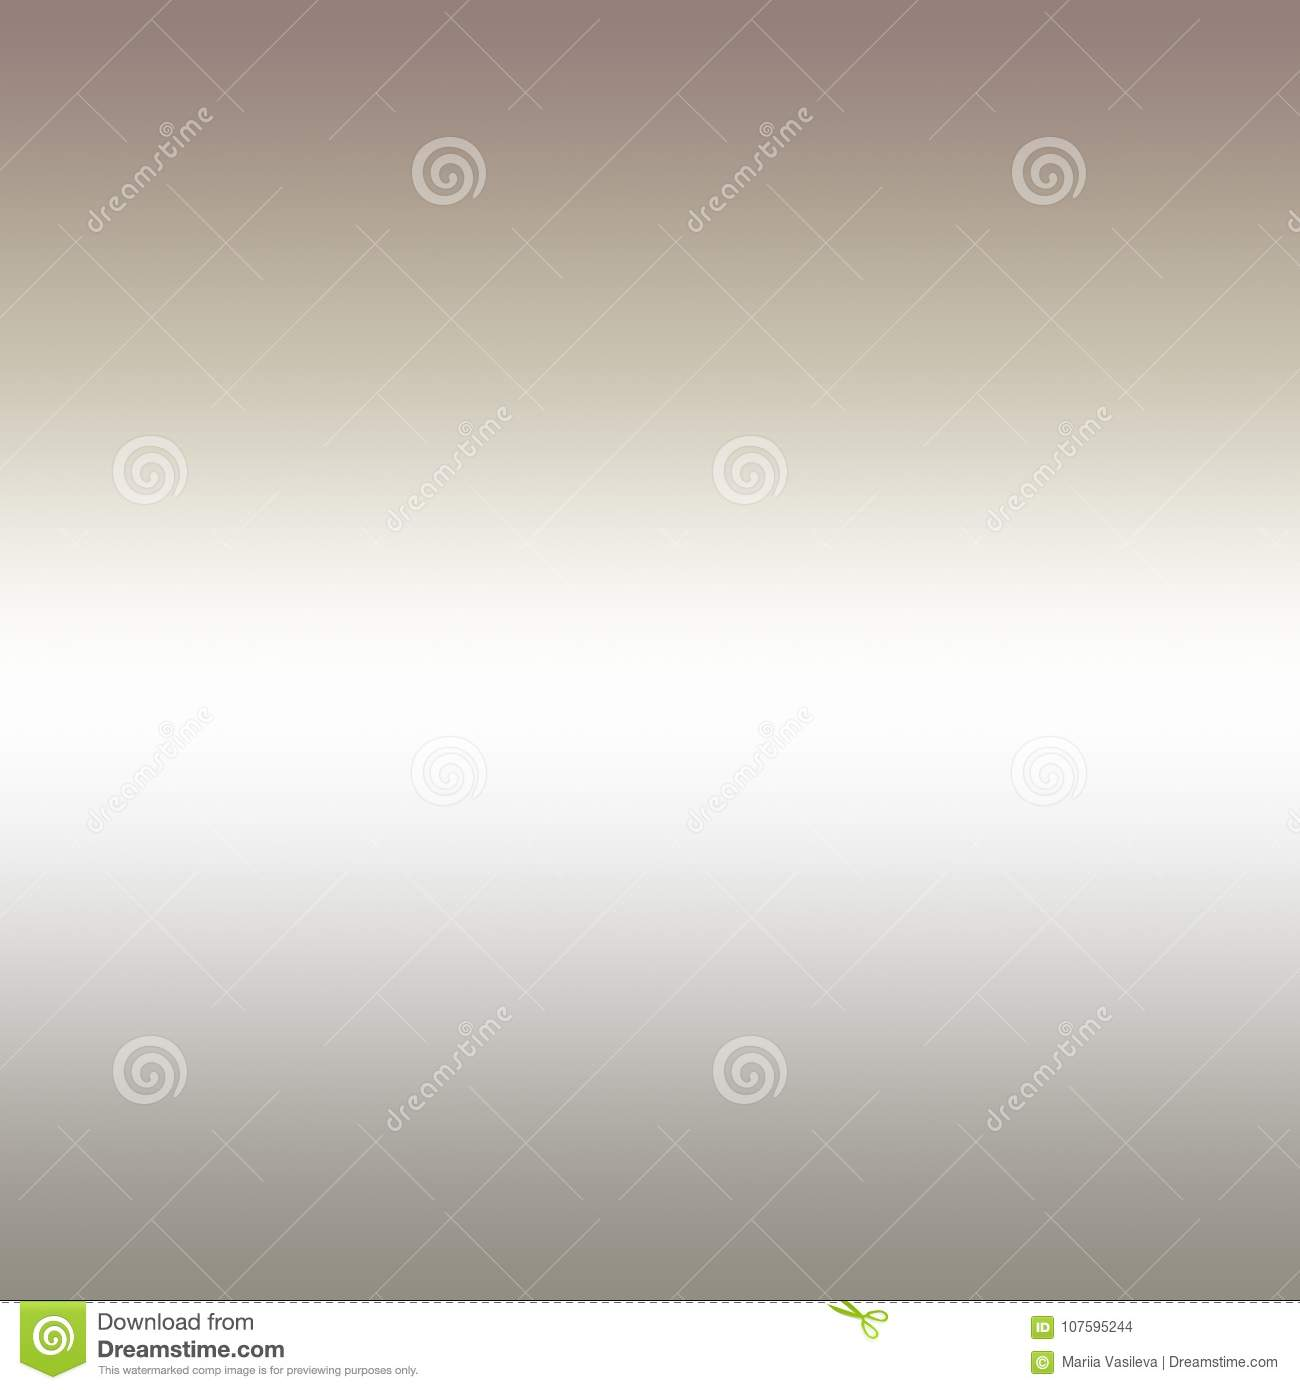 b280f7cd3006 BACKGROUND GOLD SILVER METAL TEXTURE Graphic Shiny Gradient Abstract ...